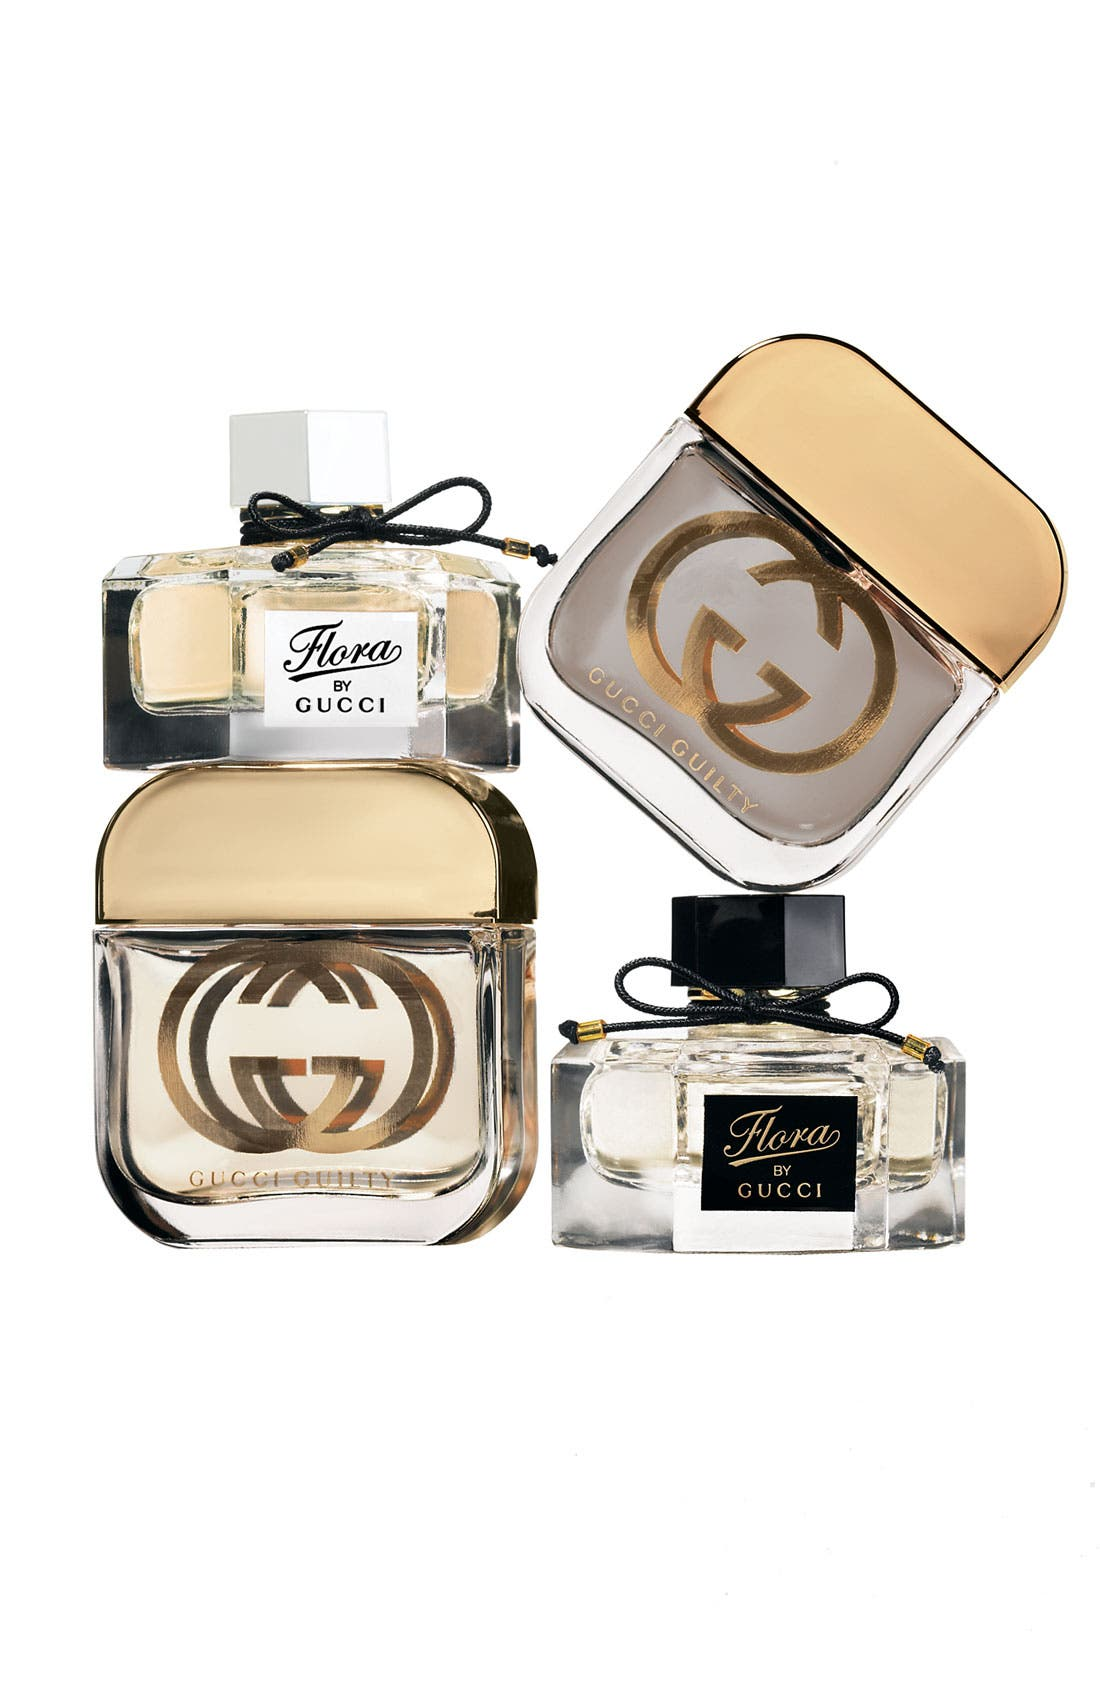 GUCCI 'House of Gucci' 90th Anniversary Fragrance Coffret for Her, Main, color, 000